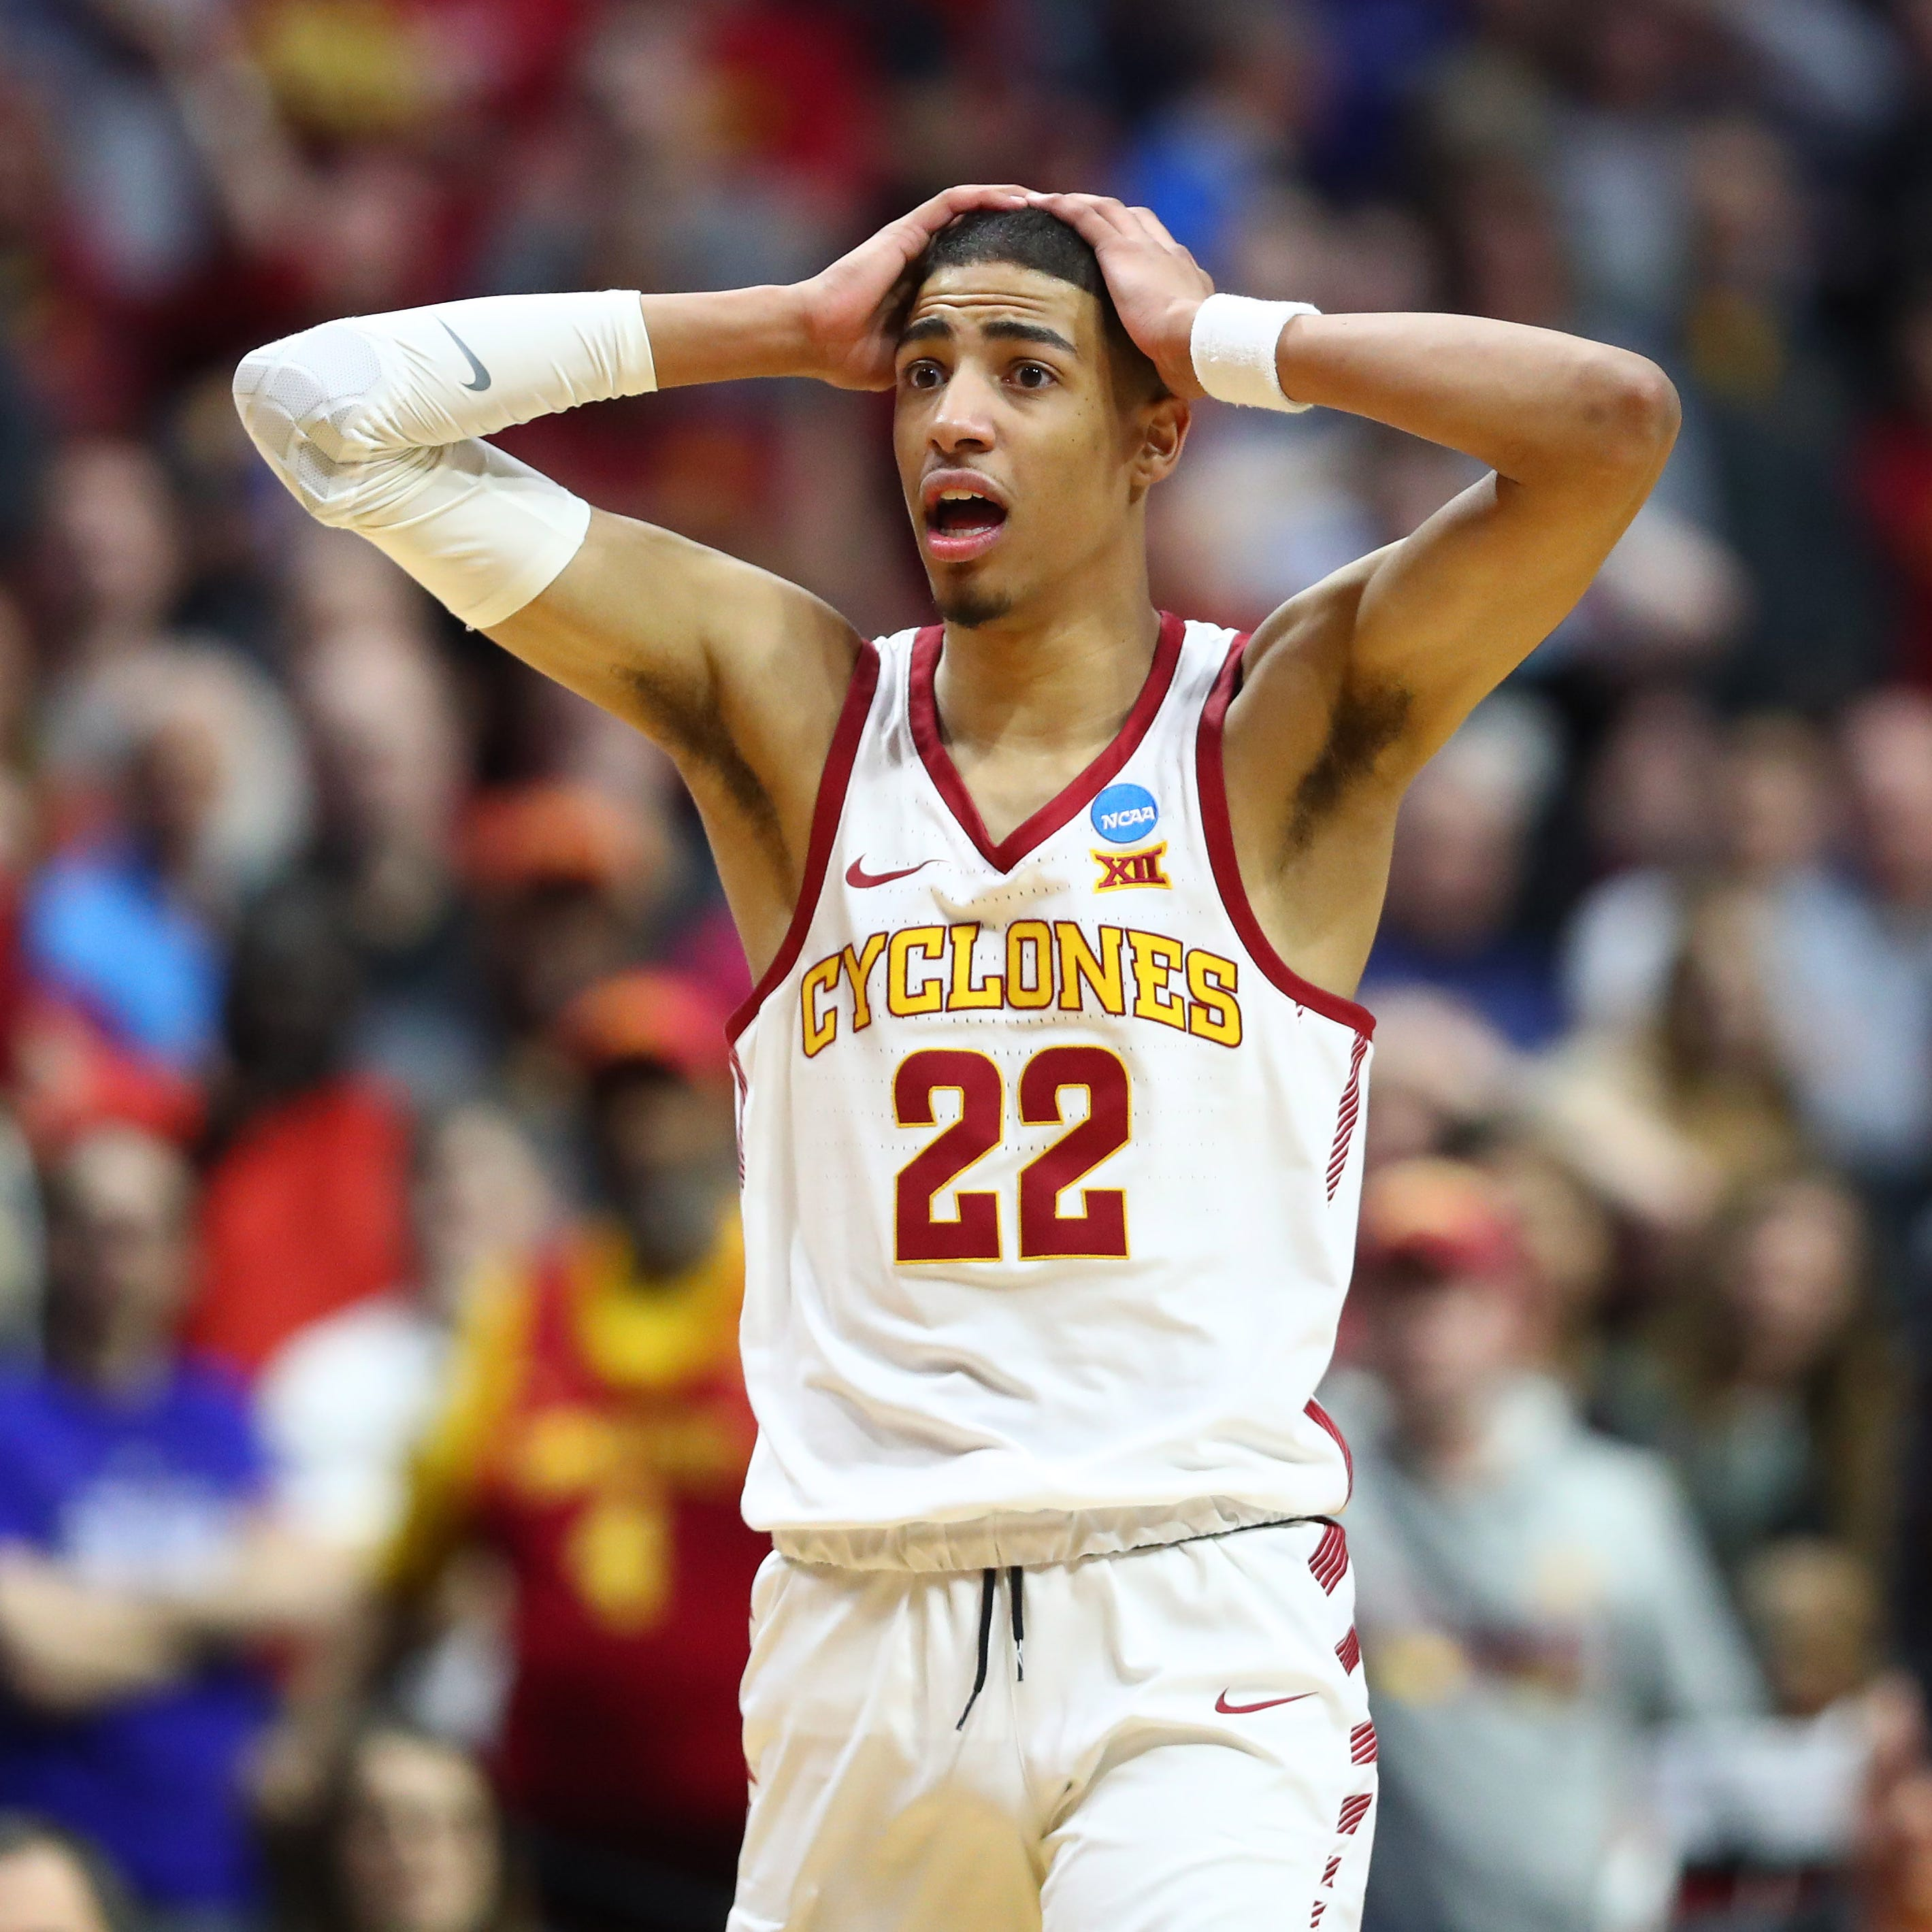 Peterson: Iowa State hung in until the end, before bowing out to Ohio State in the NCAA Tournament